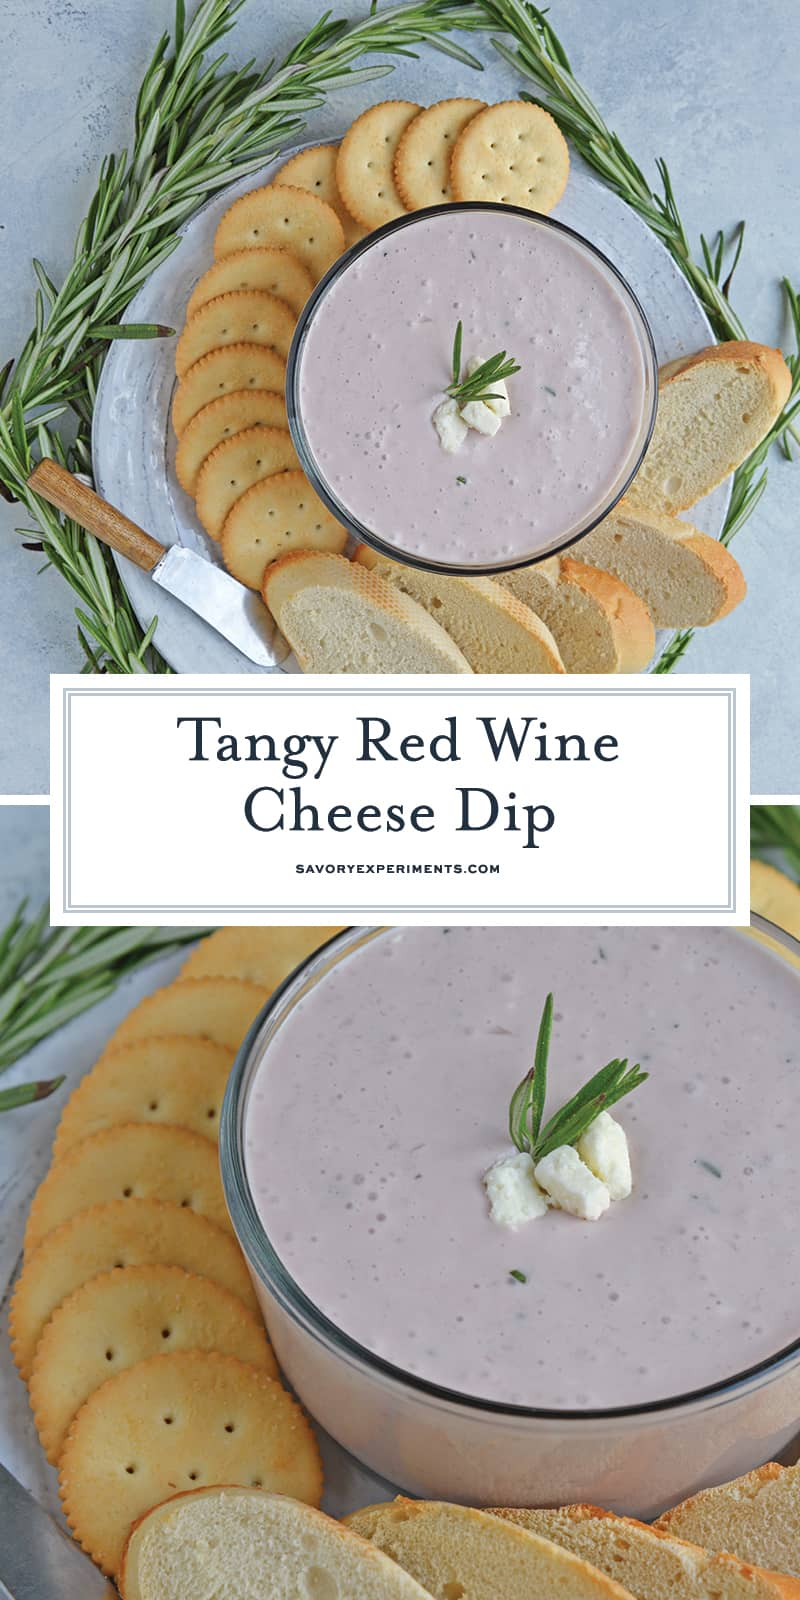 This Red Wine Cheese Dip is a snack or appetizer dip that blends flavors of caramelized onions, rosemary, red wine, honey and cream cheese. The perfect dip for crackers! #redwinecheesedip #creamcheesedip #cheeseandcrackers www.savoryexperiments.com